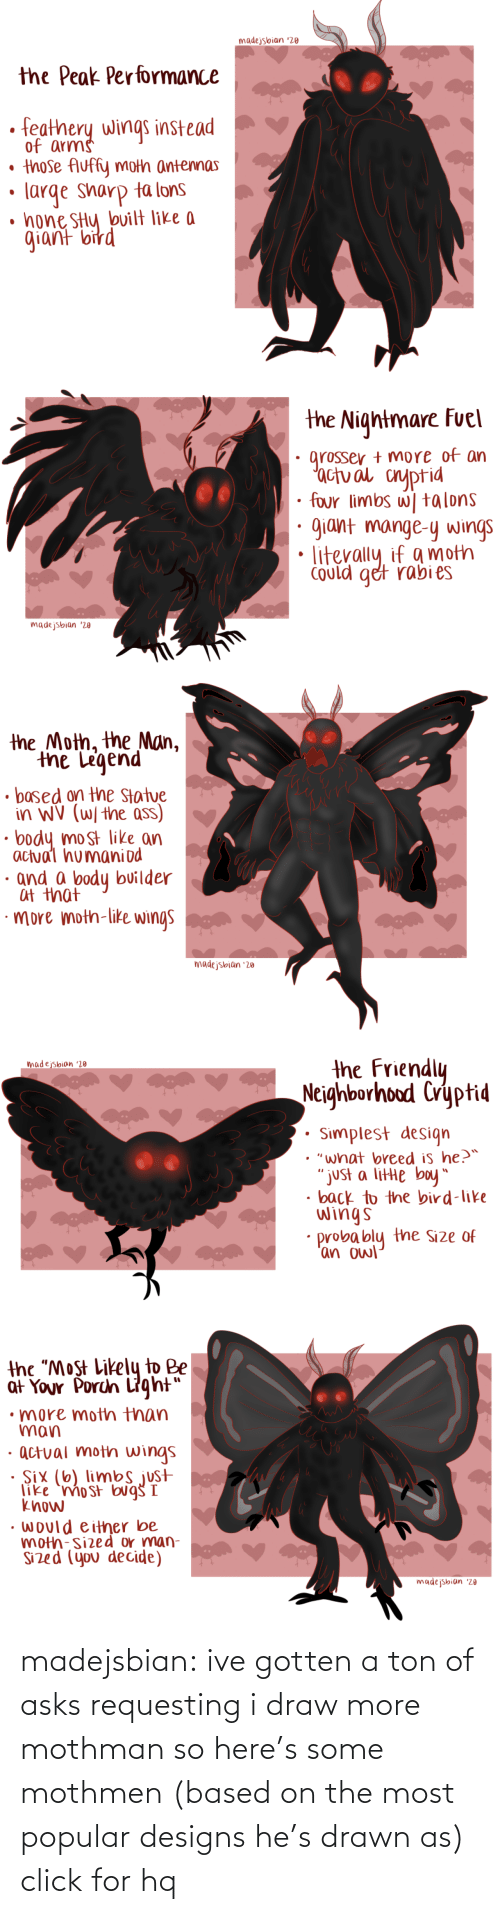 "bird: madejsbian '20  the Peak Performance  feathery wings instead  of arms  • those Auffy moth antennas  large sharp ta lons  • hone SHy bvilt like a  giant bird   the Nightmare Fuel  grosser + more of an  'actual cnyptid  four limbs w| talons  giant mange-y wings  Could get rabi es  madejsbian '20   the Moth, the Man,  the Legend  • based on the Statue  in WV (W/ the ass)  body most like an  actual humaniod  · and a body builder  at that  ·more moth-like wings  madejsbian '20   the Friendly  Neighborhood Cryptid  madejsbian '20  Simplest design  • ""what breed is he?™  ""just a litte boy""  • back to the bird-like  wings  probably the Size of  'an owl   the ""Most Likely to Be  at Your Porch Light""  •more moth than  man  · actual moth wings  · Six (6) limbs just  like 'mo st bug I  know  • would either be  moth-sized or man-  Sized (you decide)  madejsbian '20 madejsbian: ive gotten a ton of asks requesting i draw more mothman so here's some mothmen (based on the most popular designs he's drawn as)